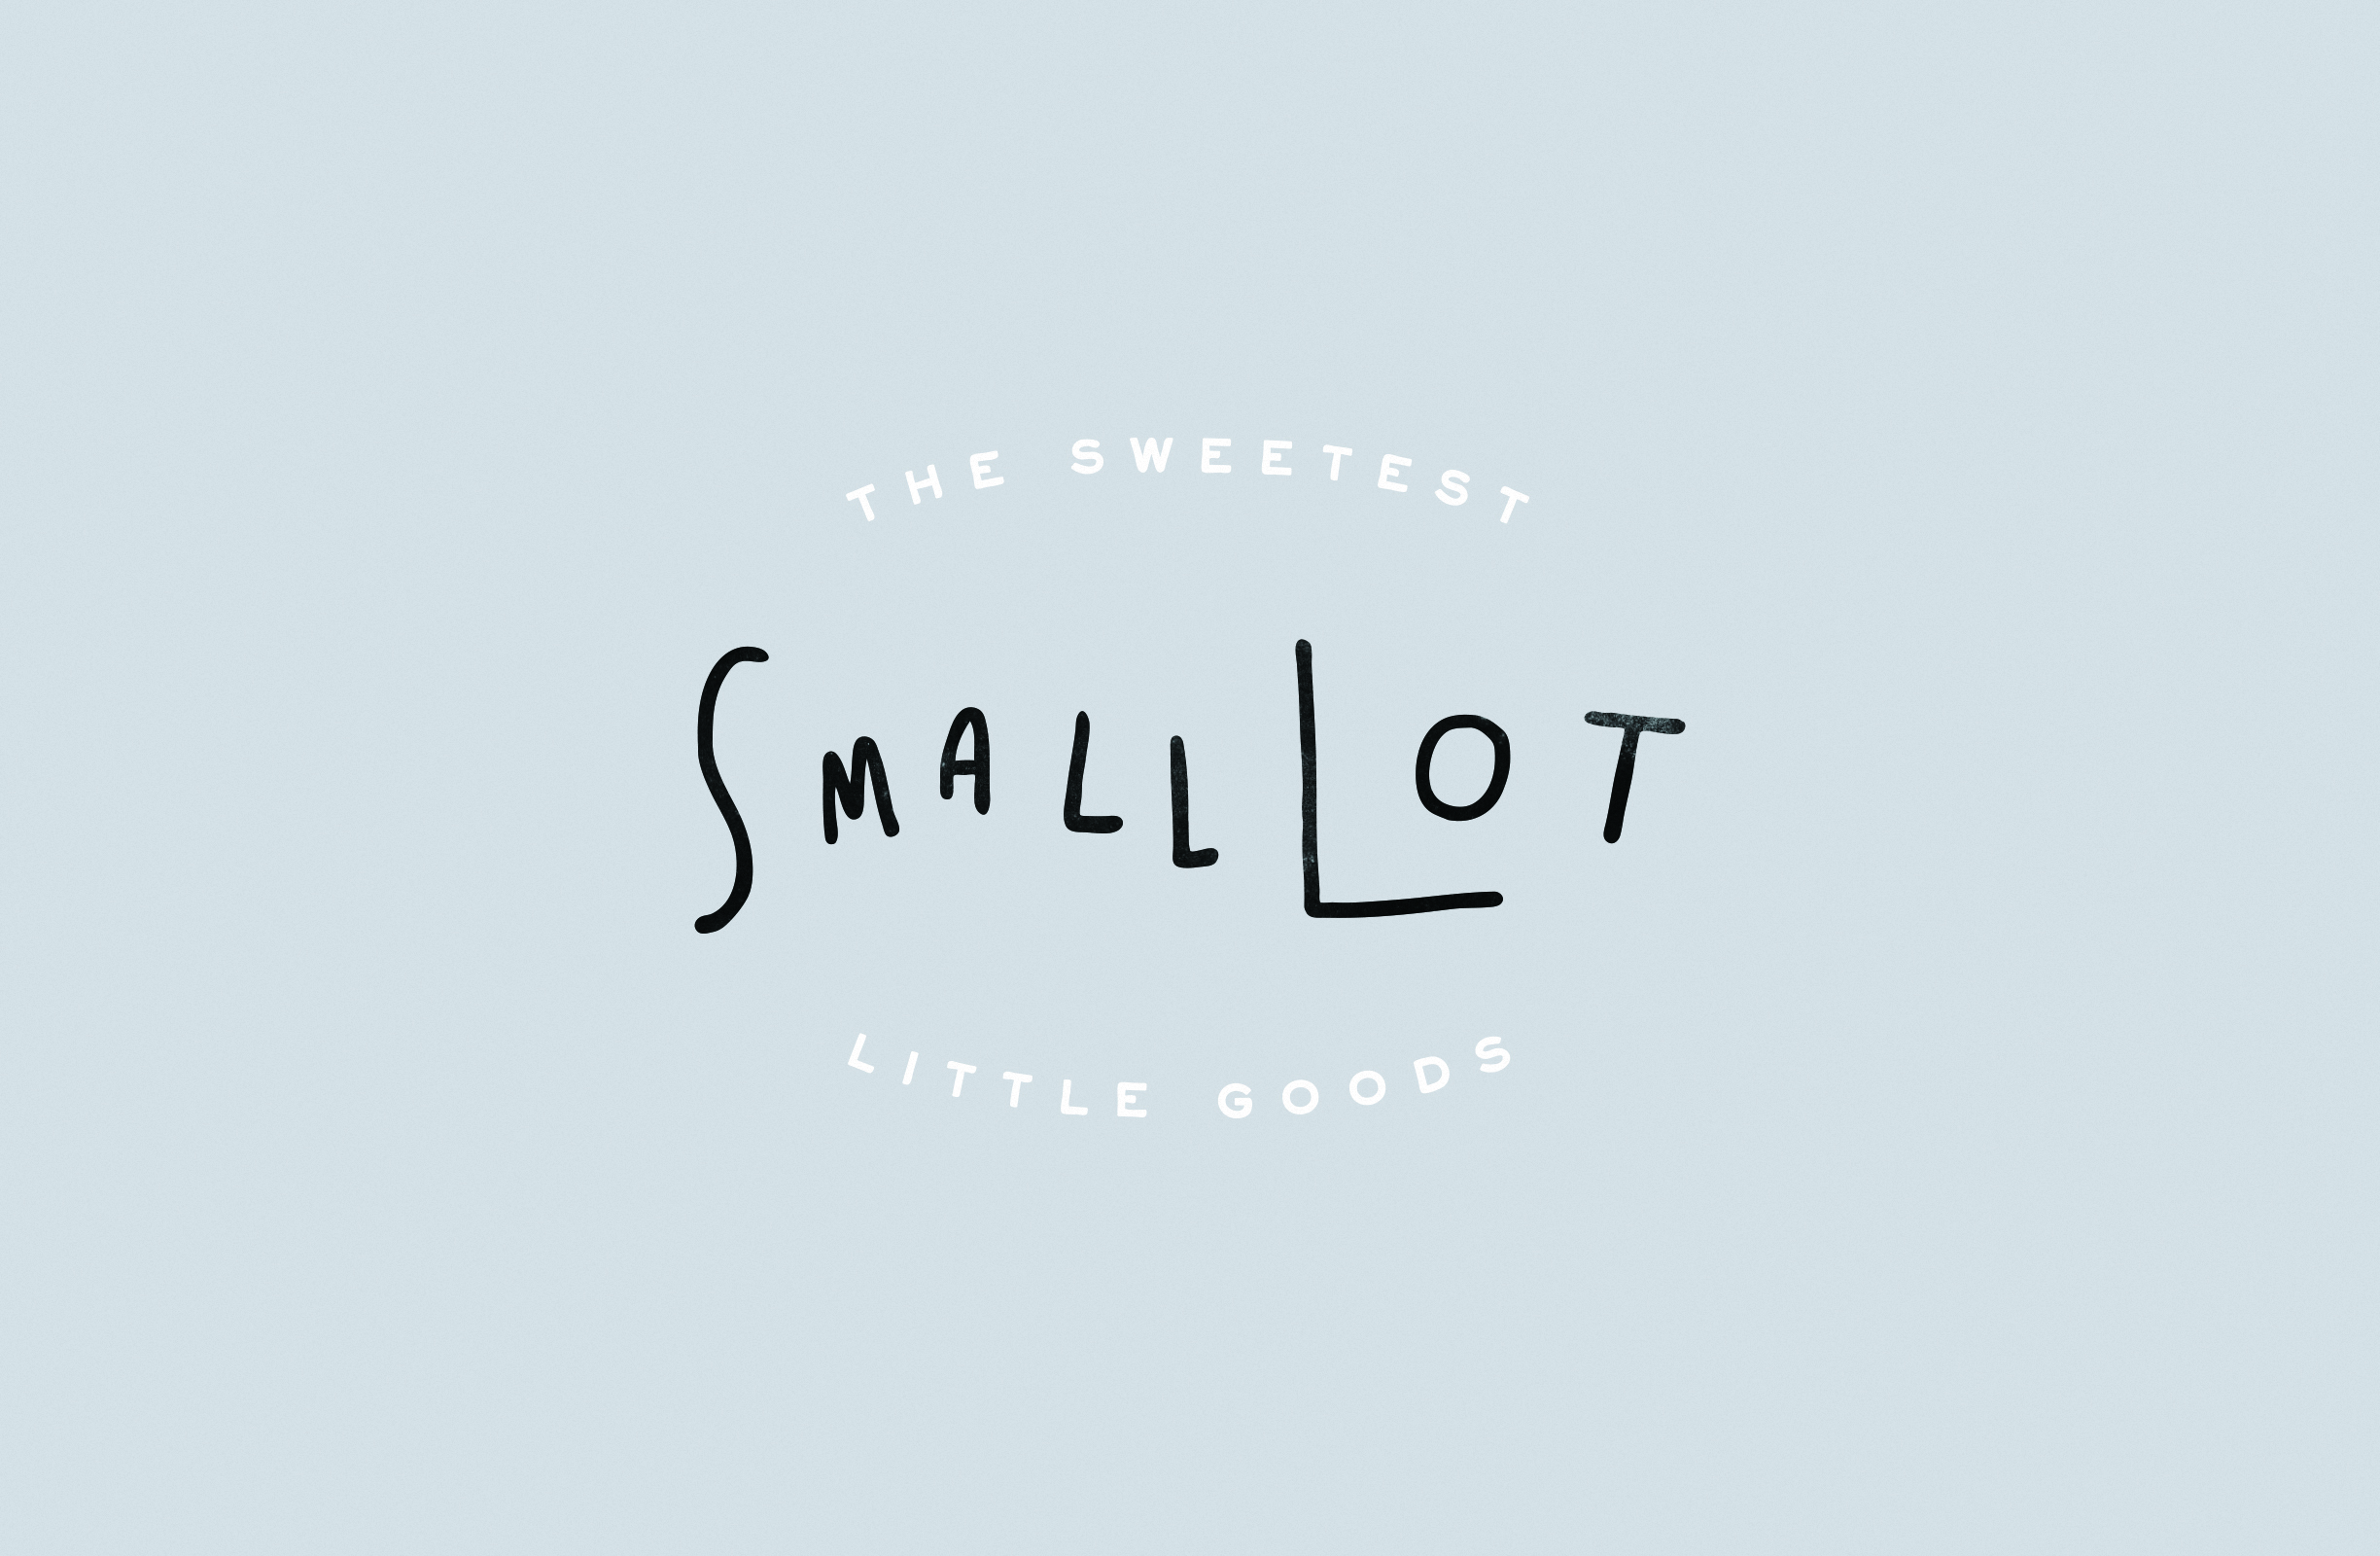 Logo Design for kids lifestyle brand Small Lot using playful approachable hand lettering.